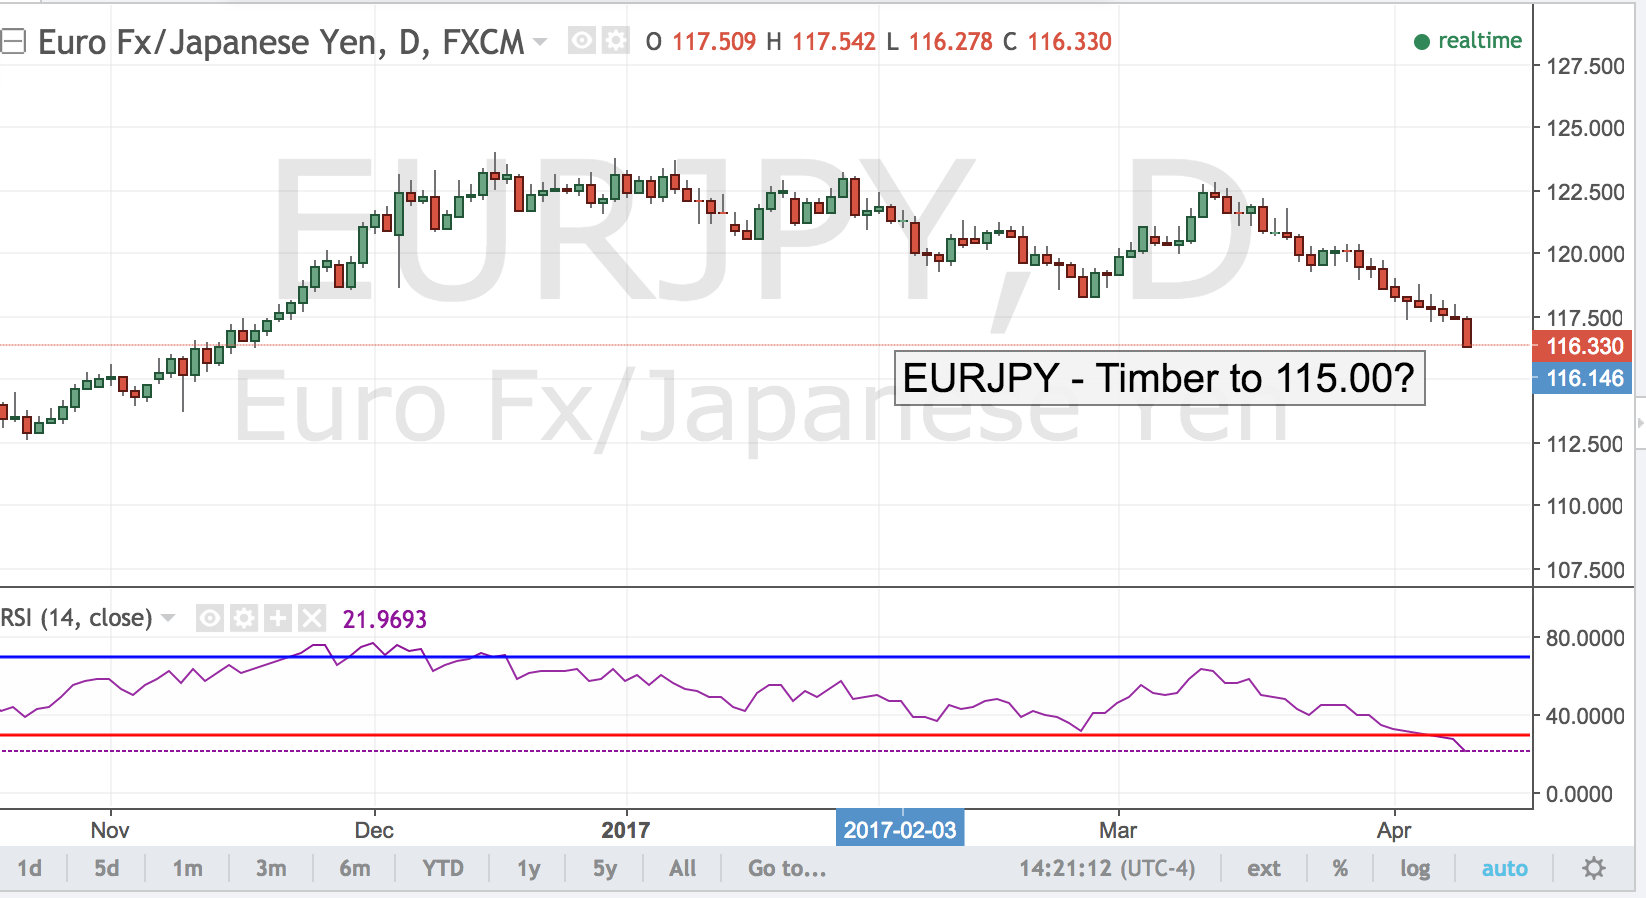 EURJPY – Timber to 115.00?